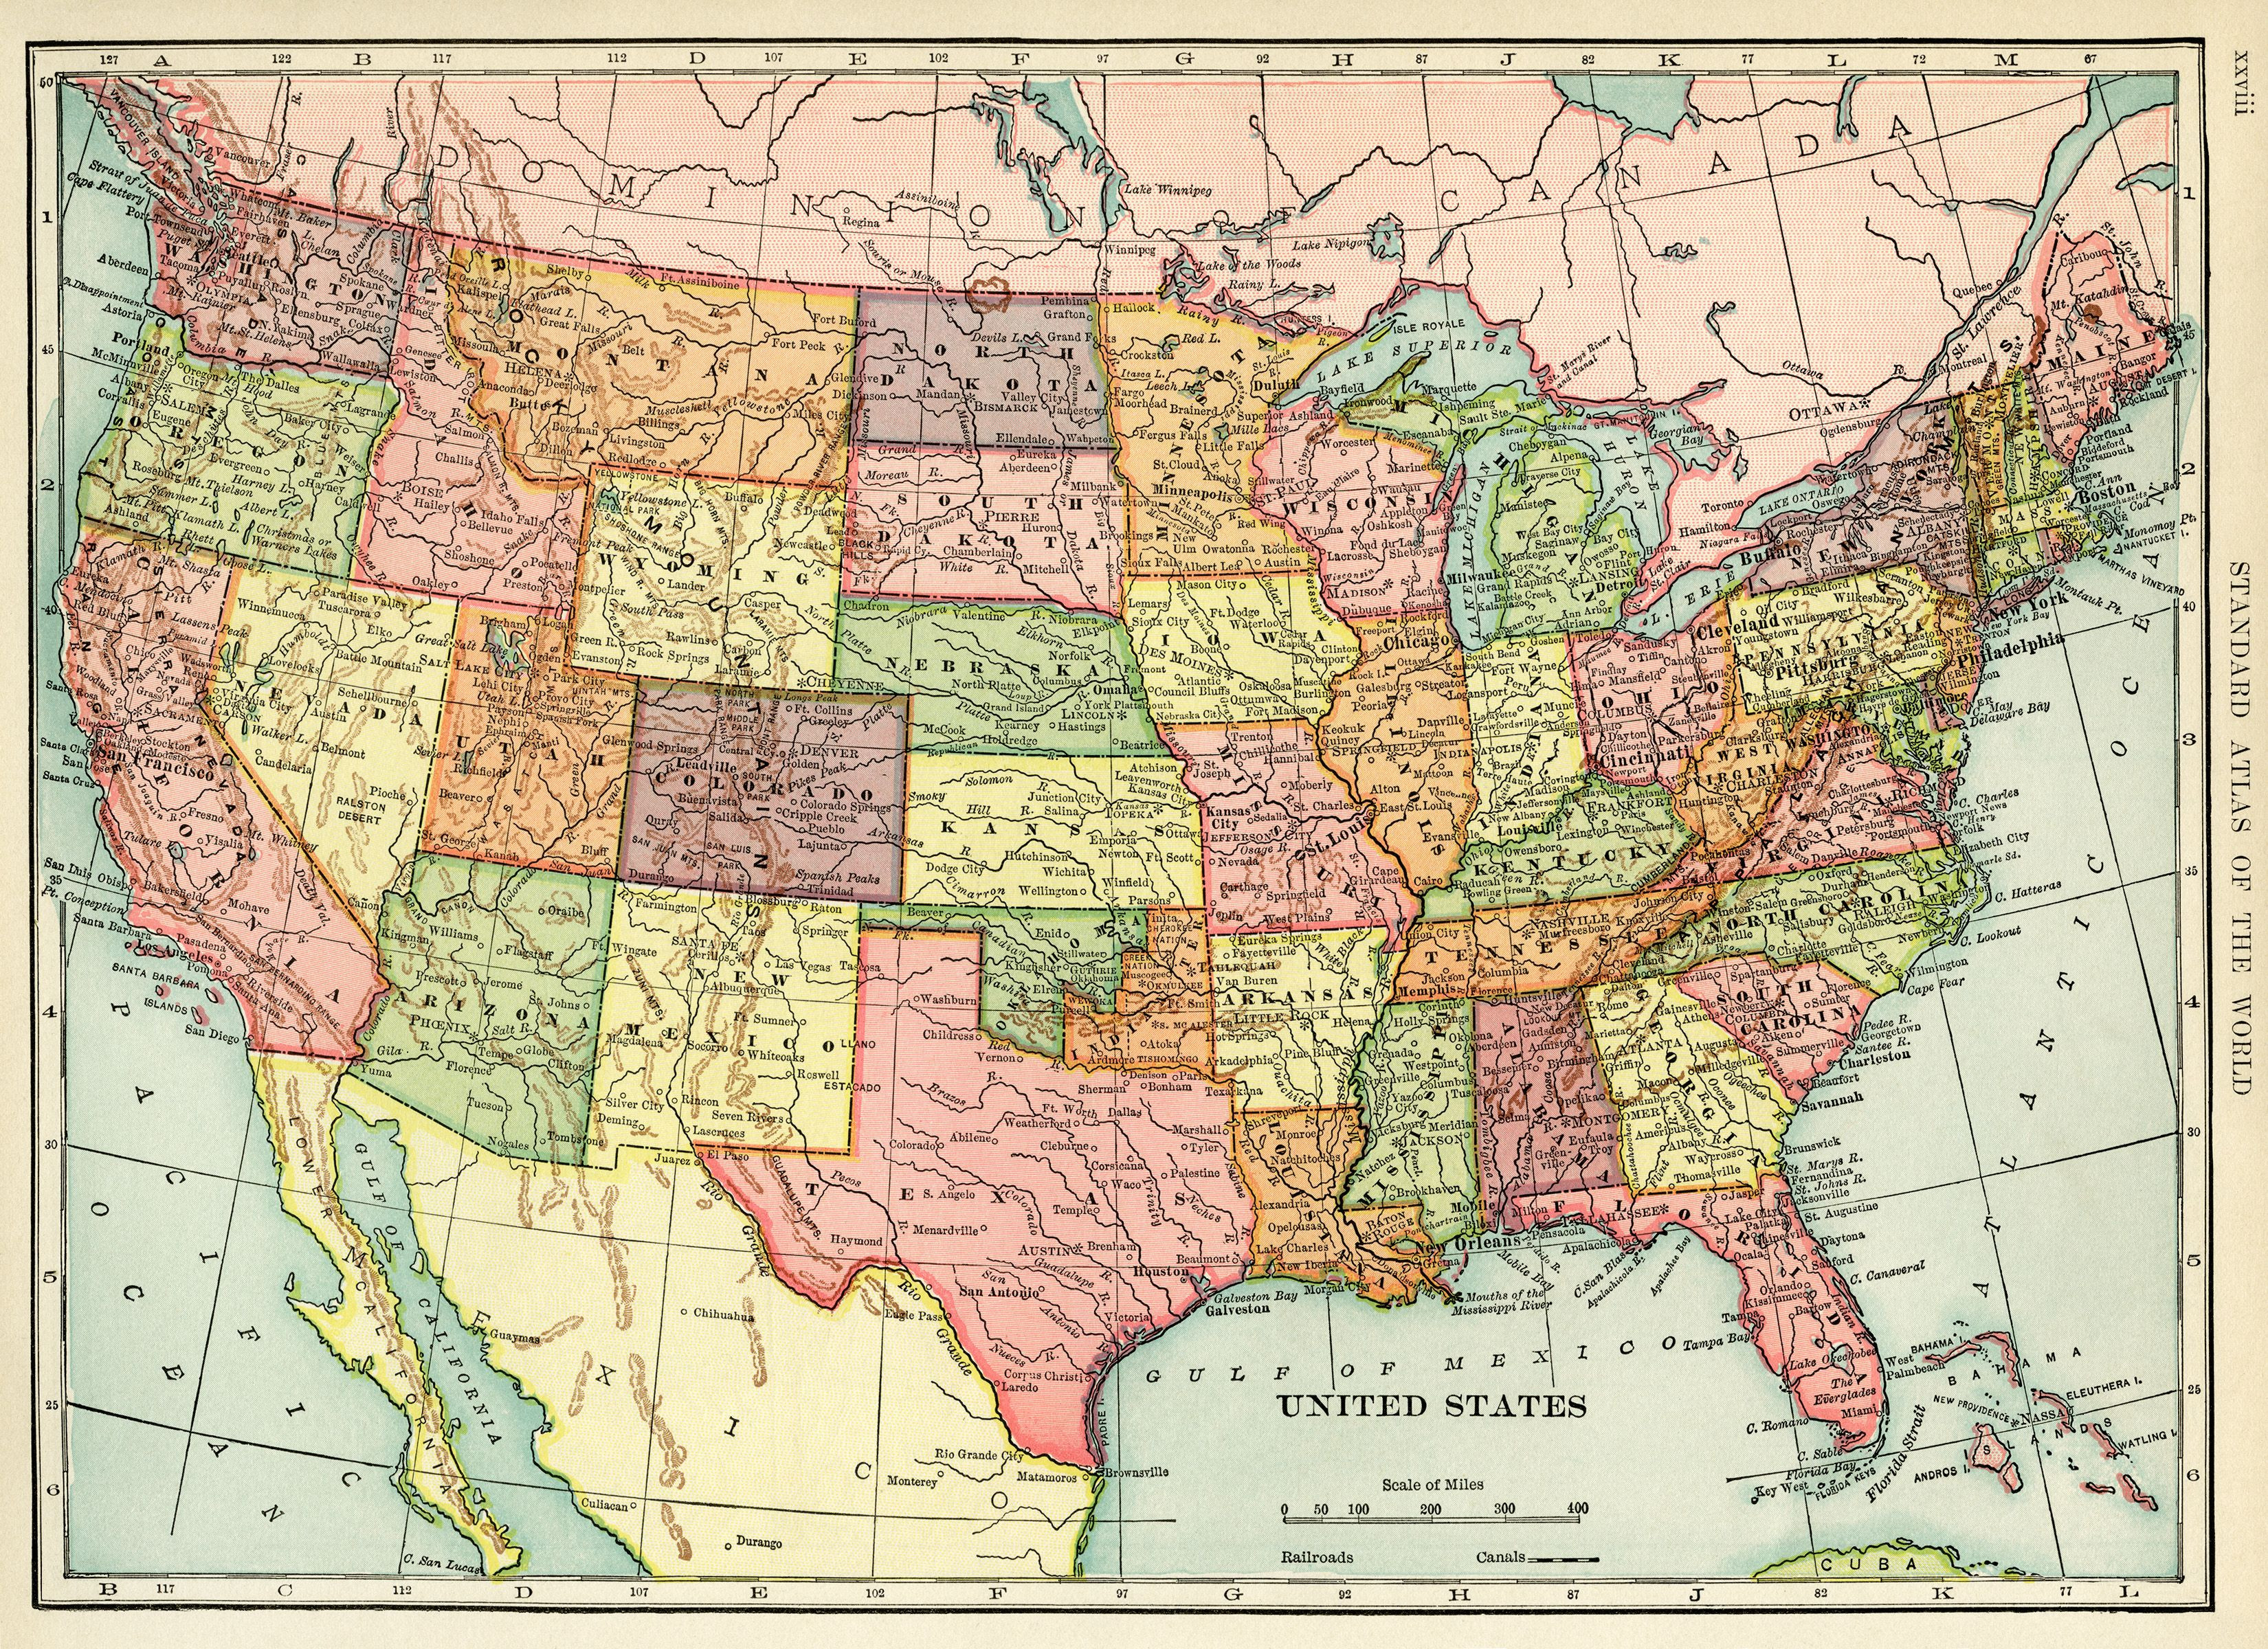 United States map vintage map antique map history geography